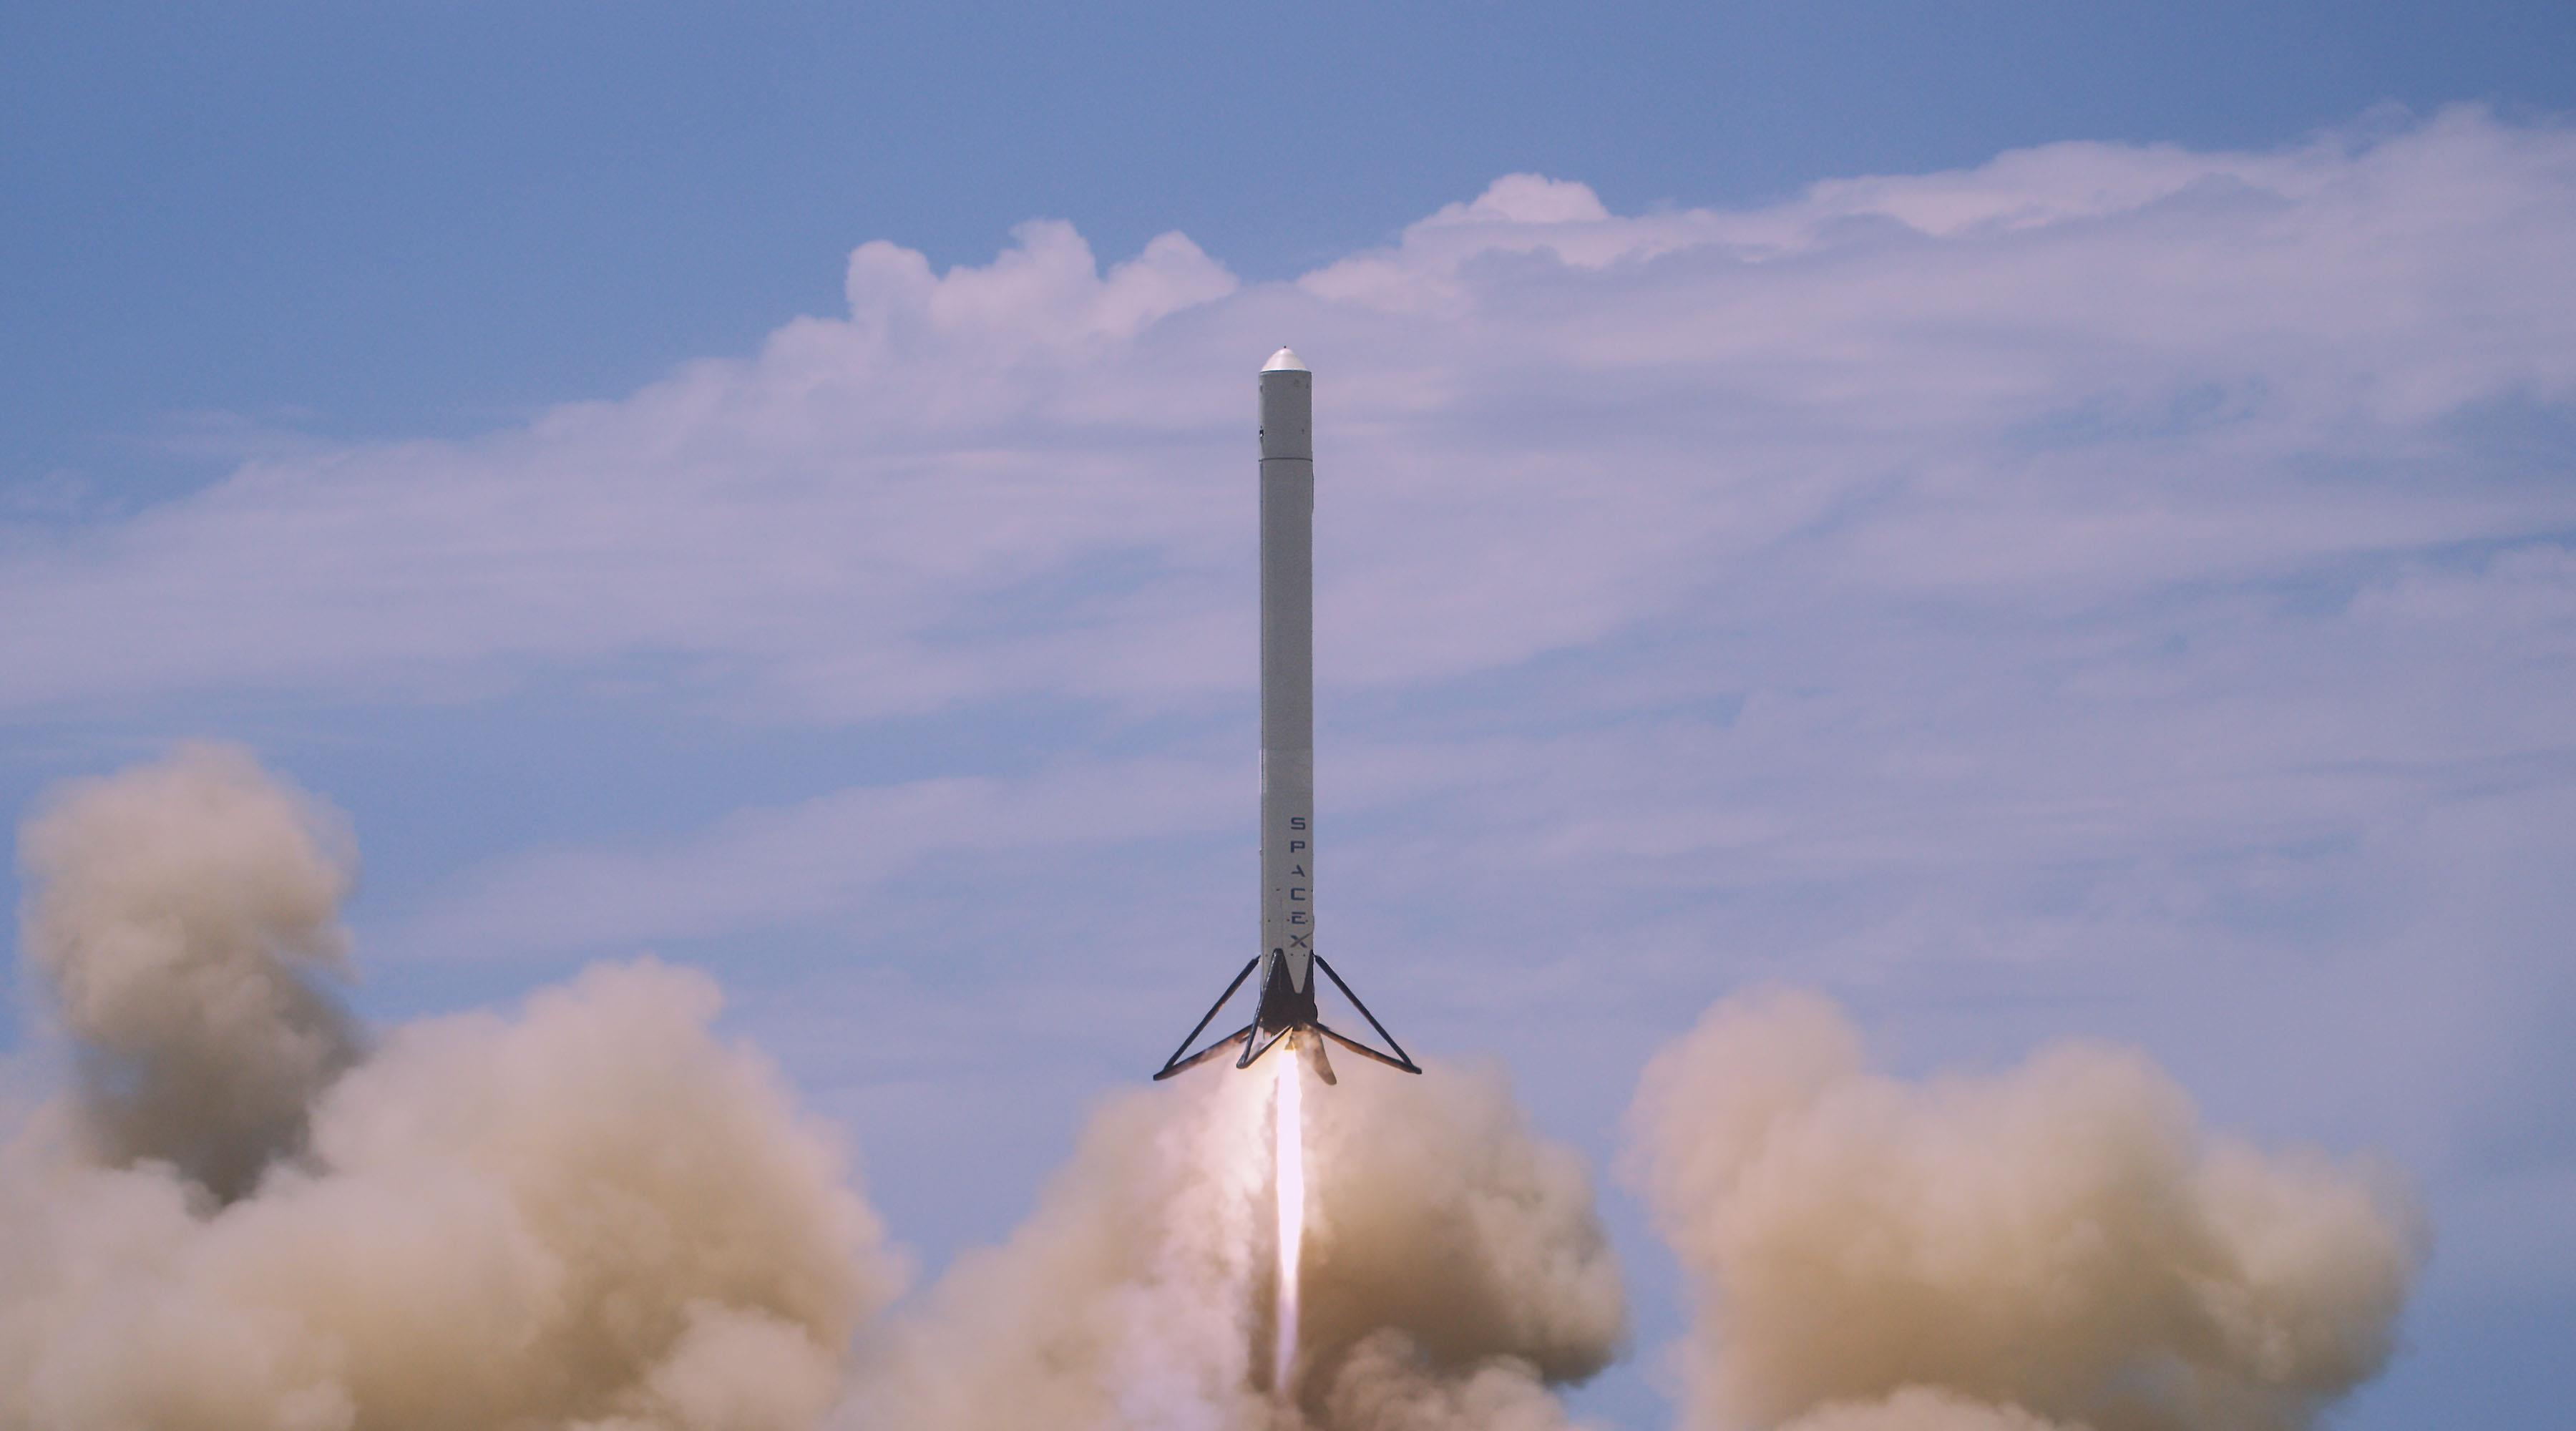 first spacex rocket - photo #21